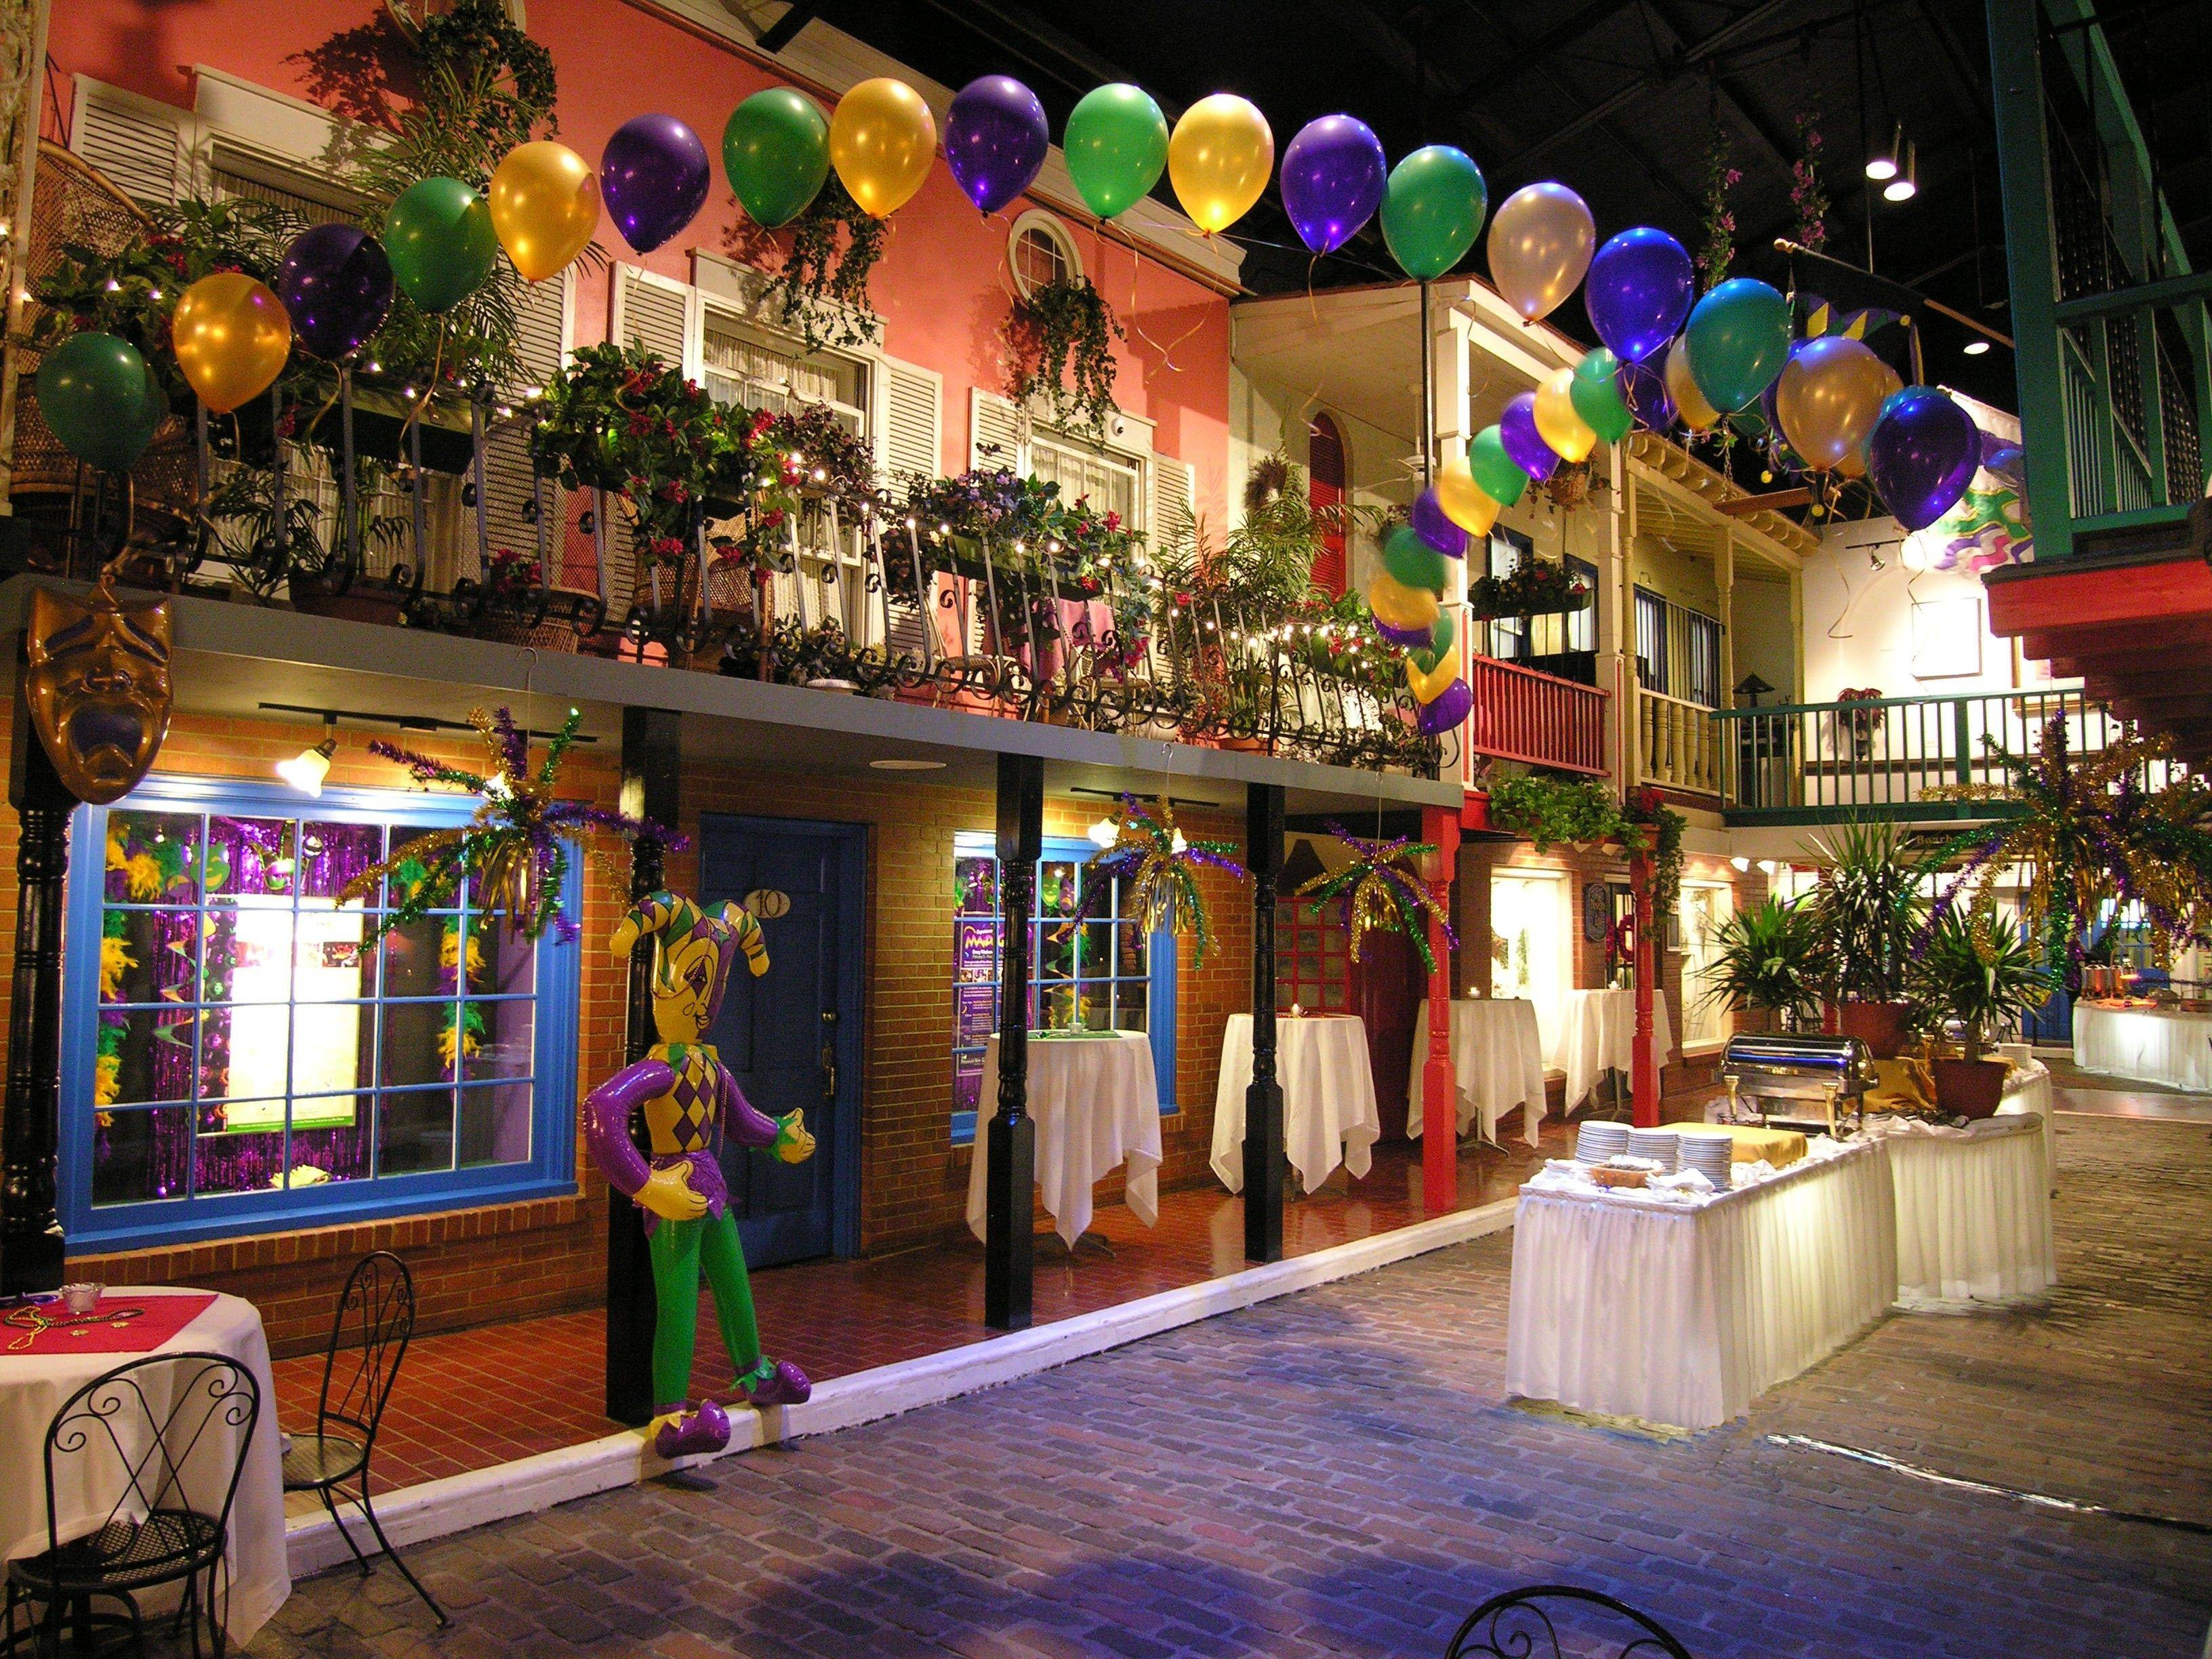 Pheasant Run's Mardi Gras package gives families a taste of New Orleans without leaving St. Charles.